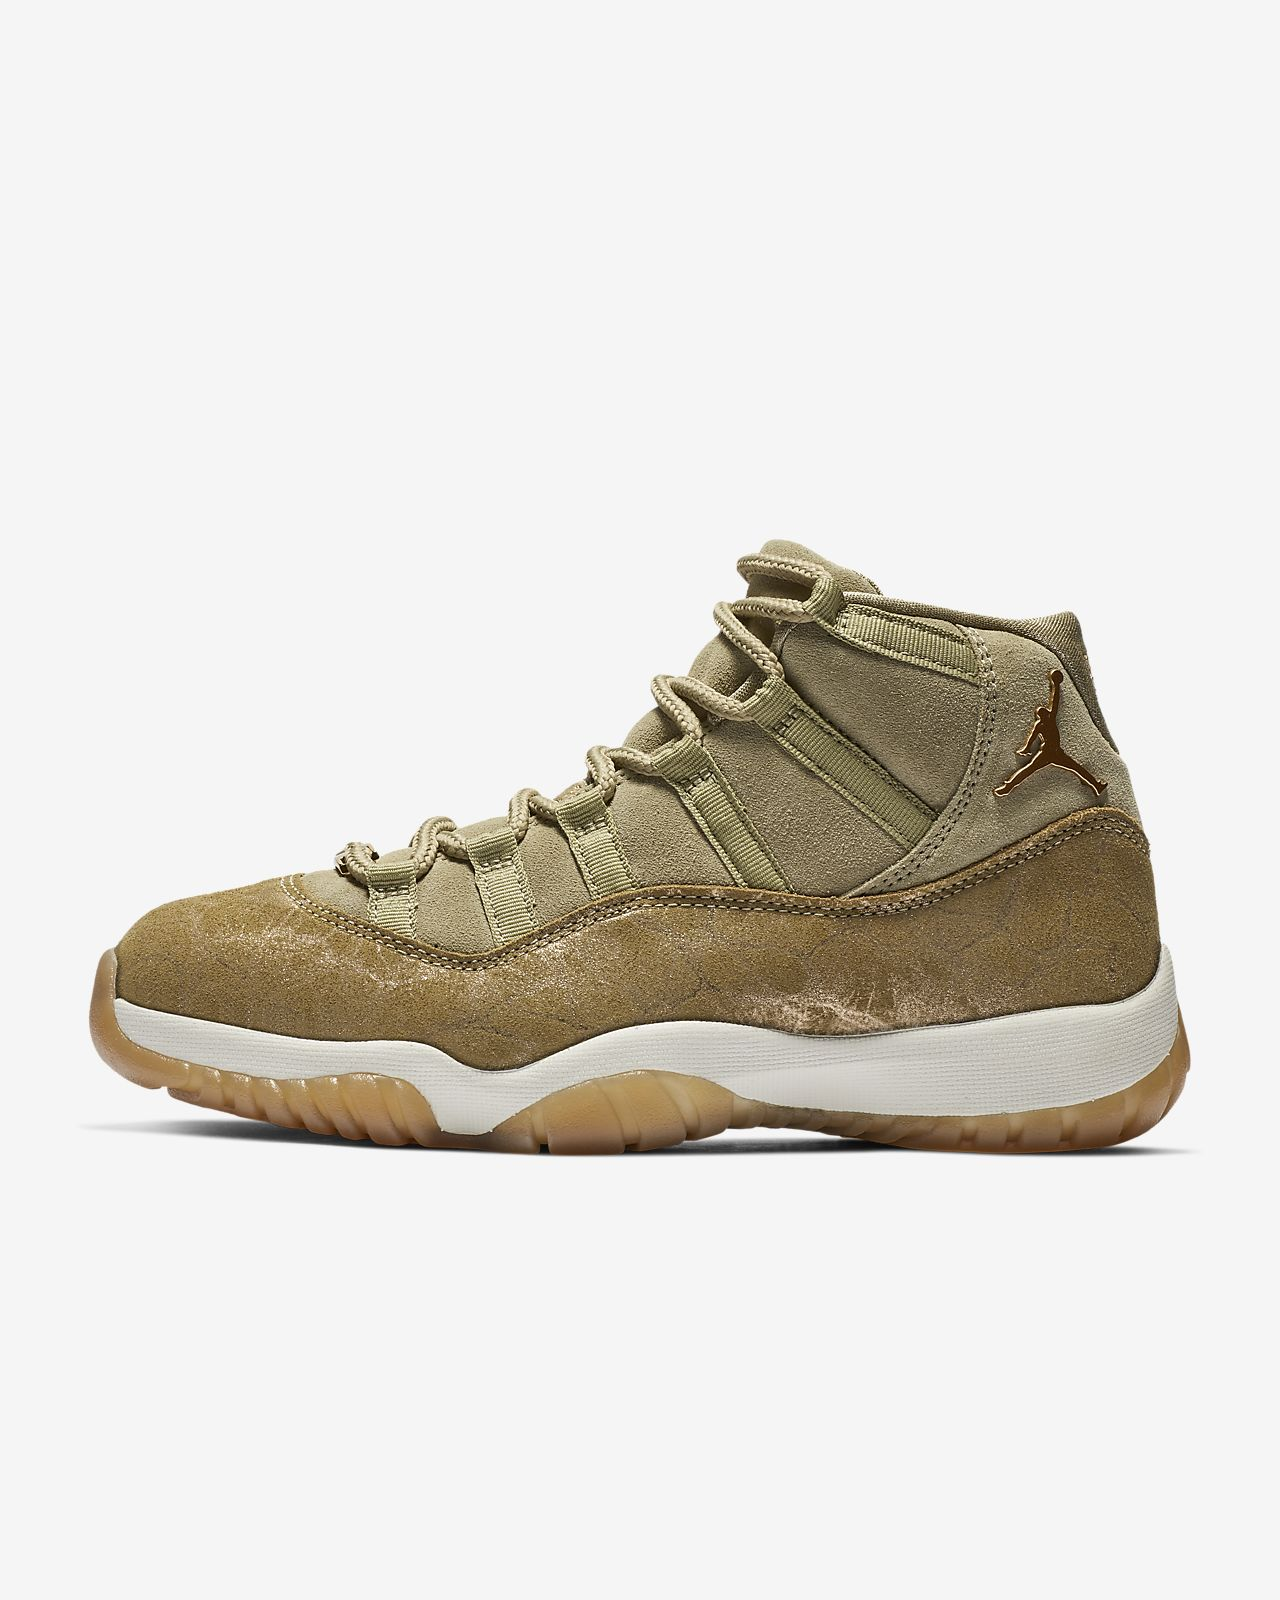 b7dd65799692 Air Jordan 11 Retro Women s Shoe. Nike.com ZA